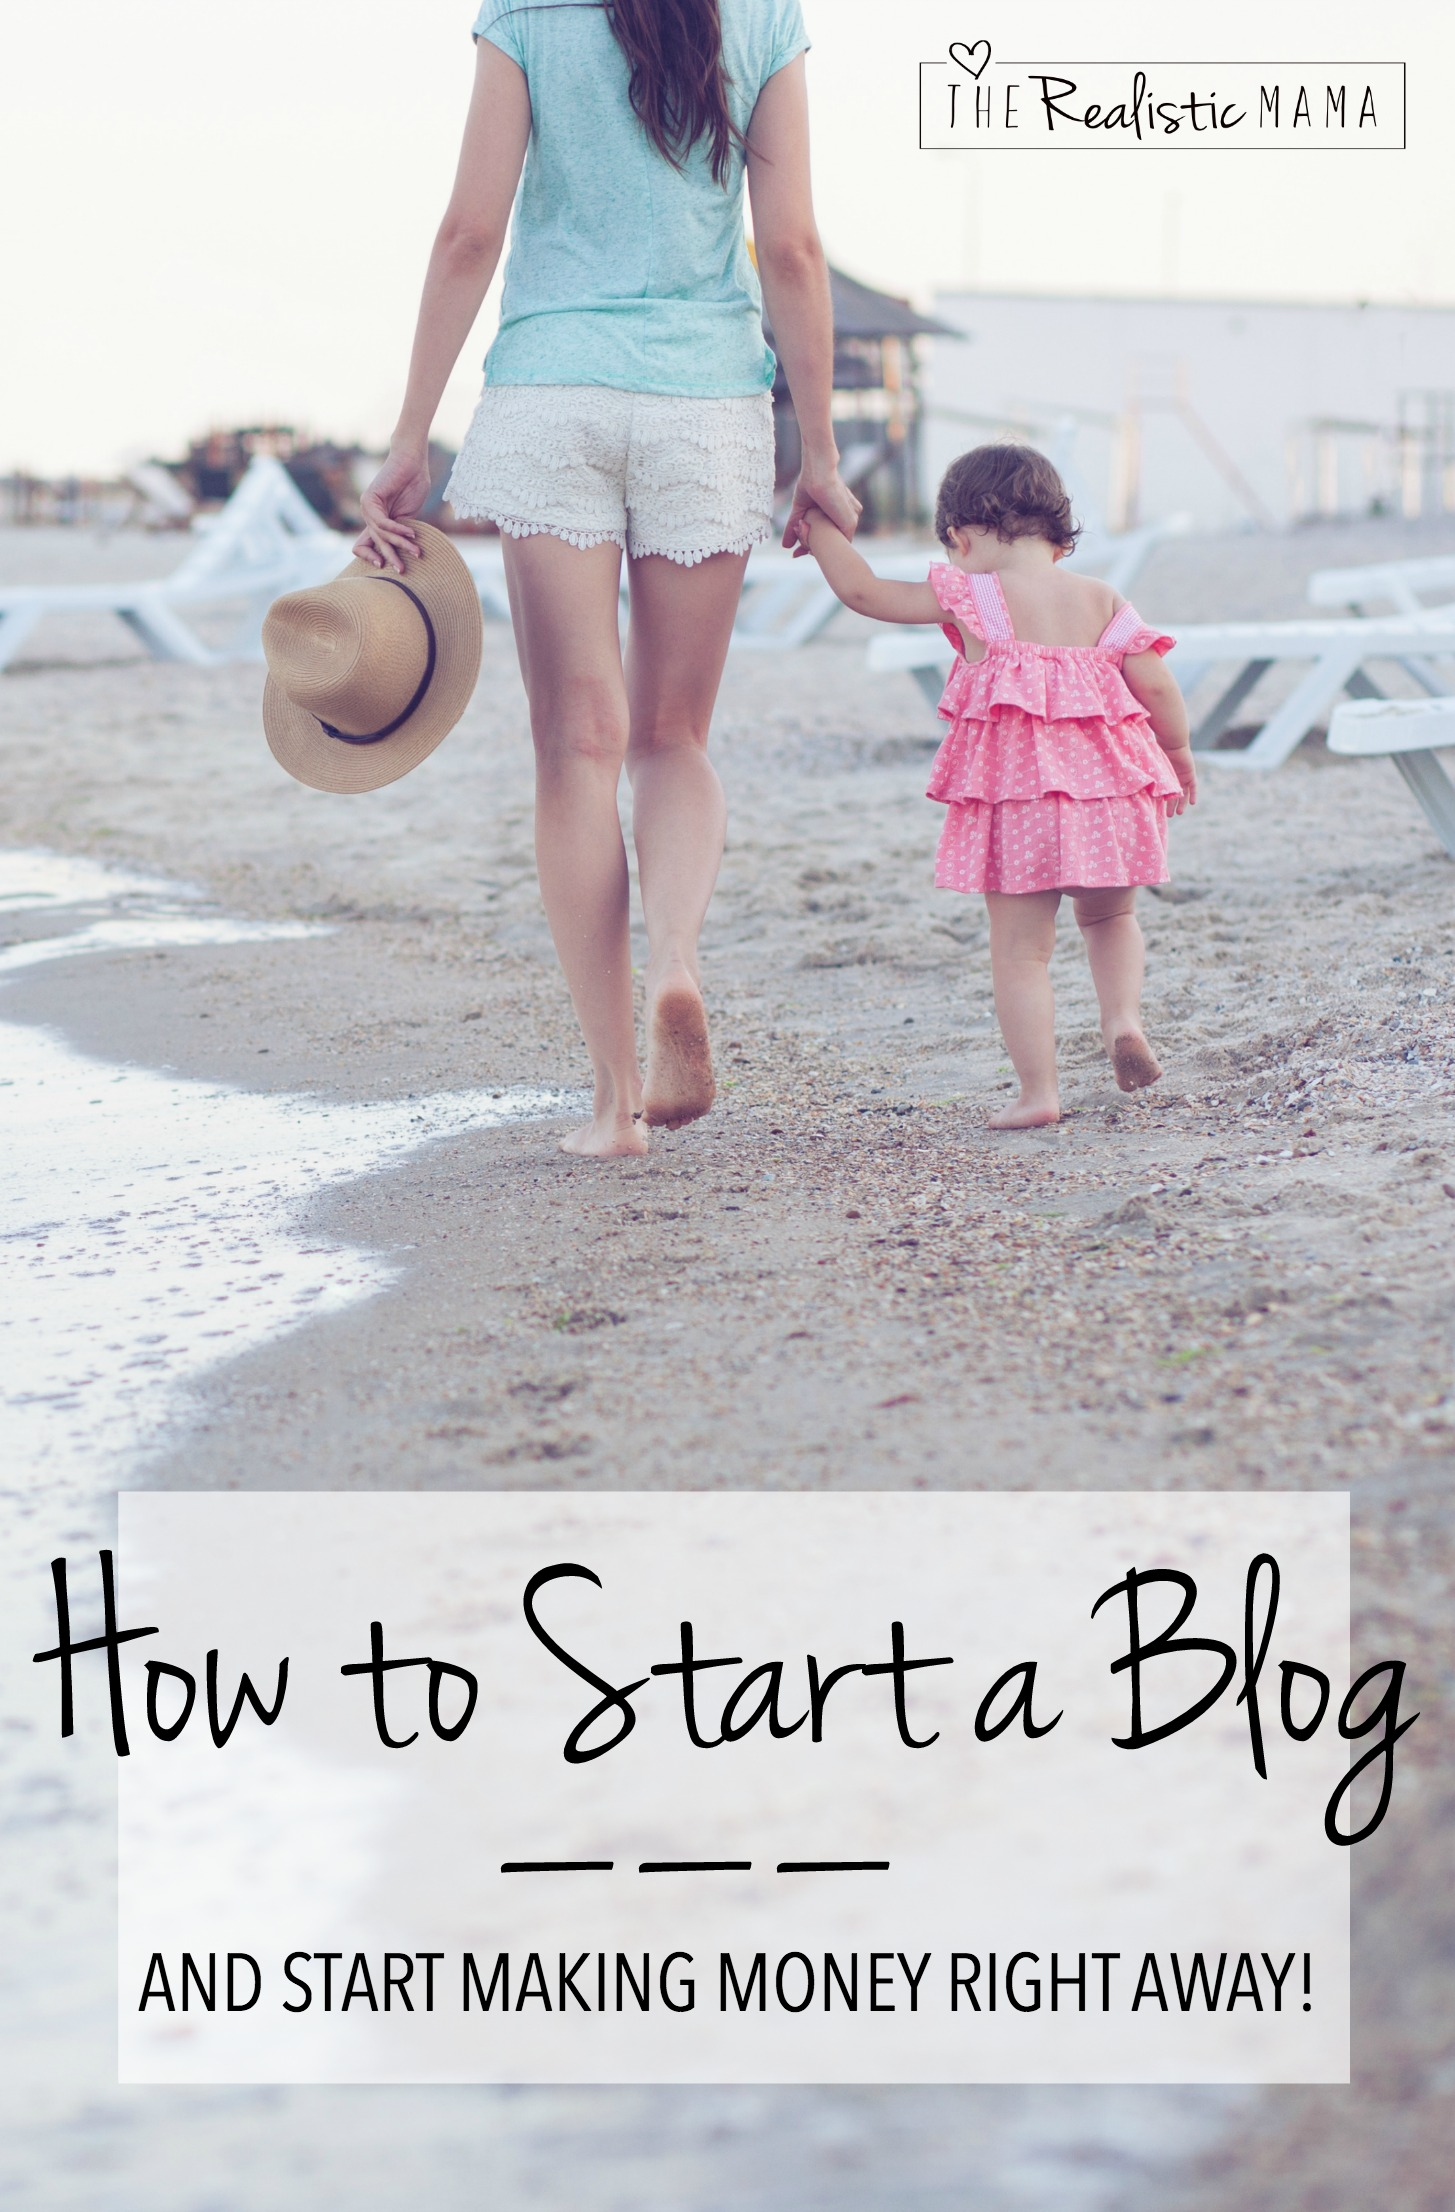 How to start a blog and everything you need to know to start making money right away!